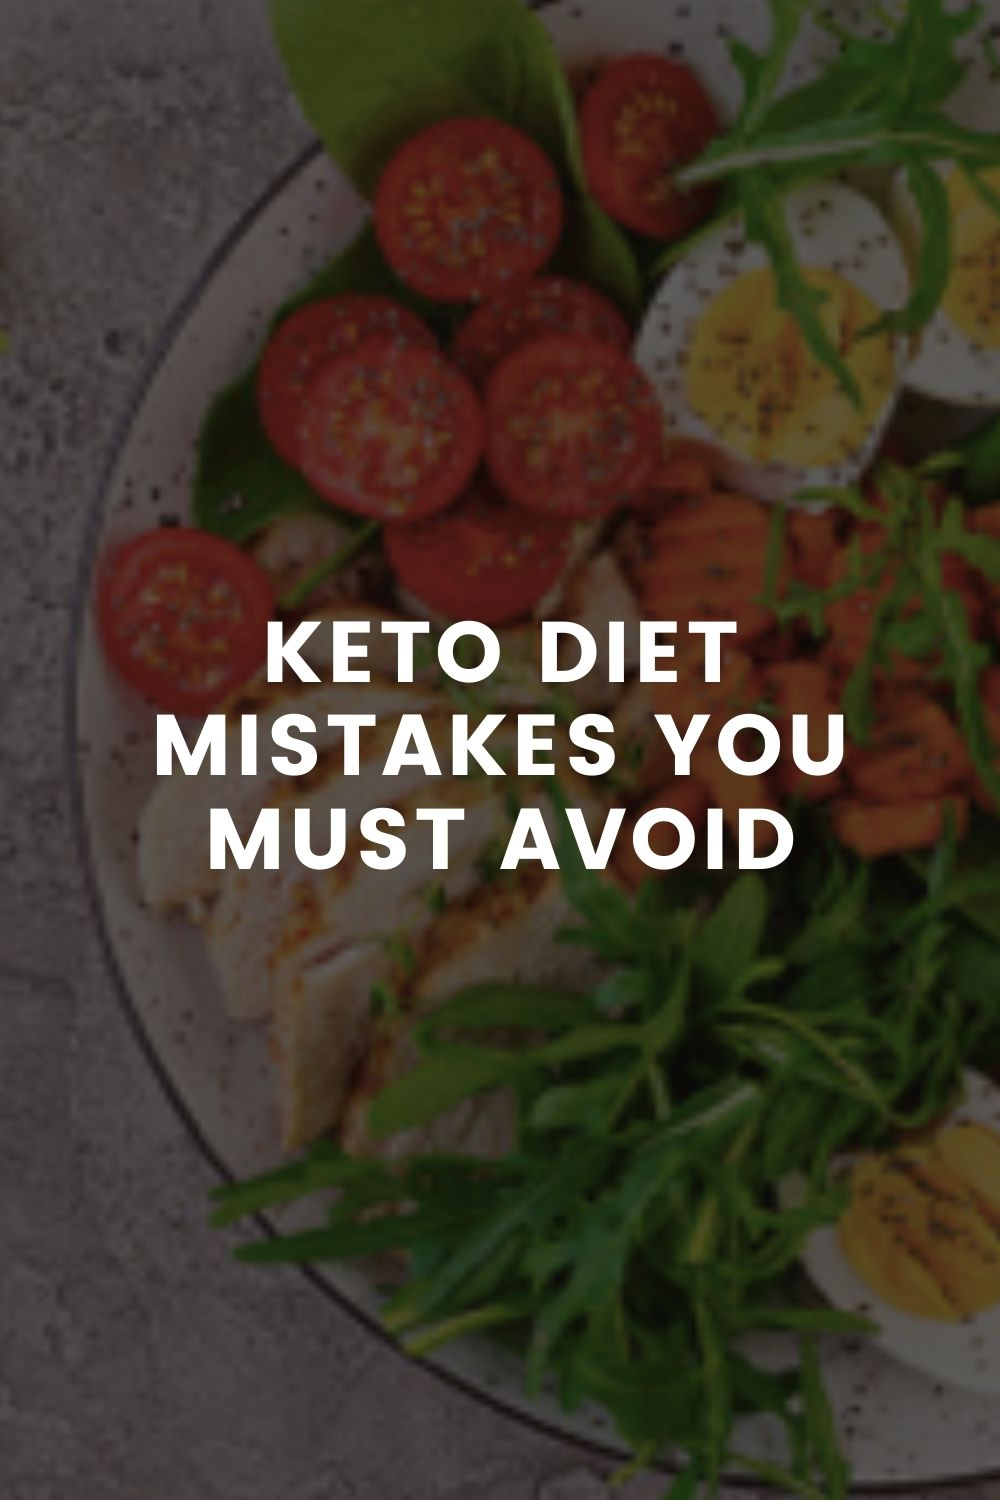 Keto Diet Mistakes You Must Avoid